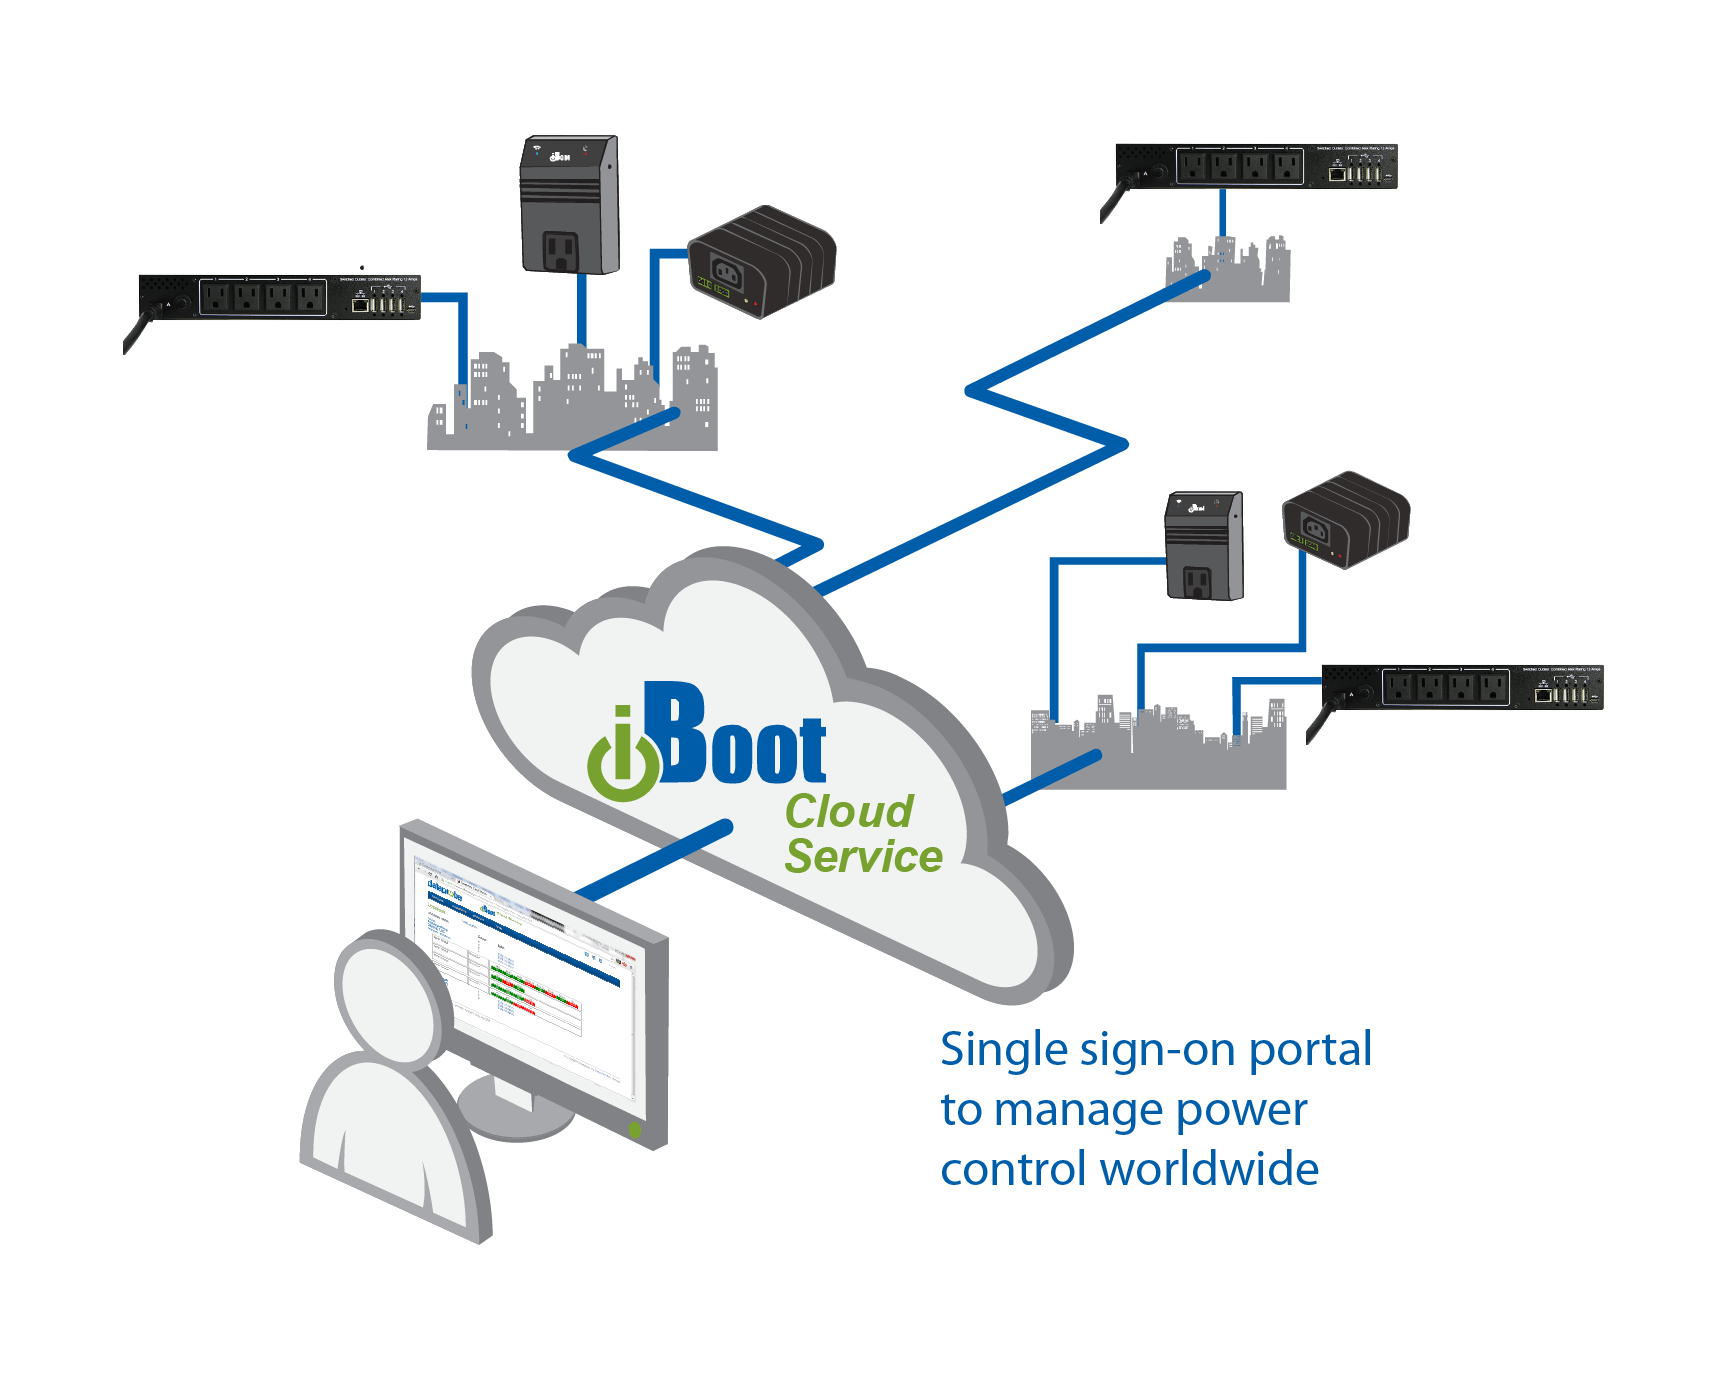 iBoot G2 Cloud Service Diagram